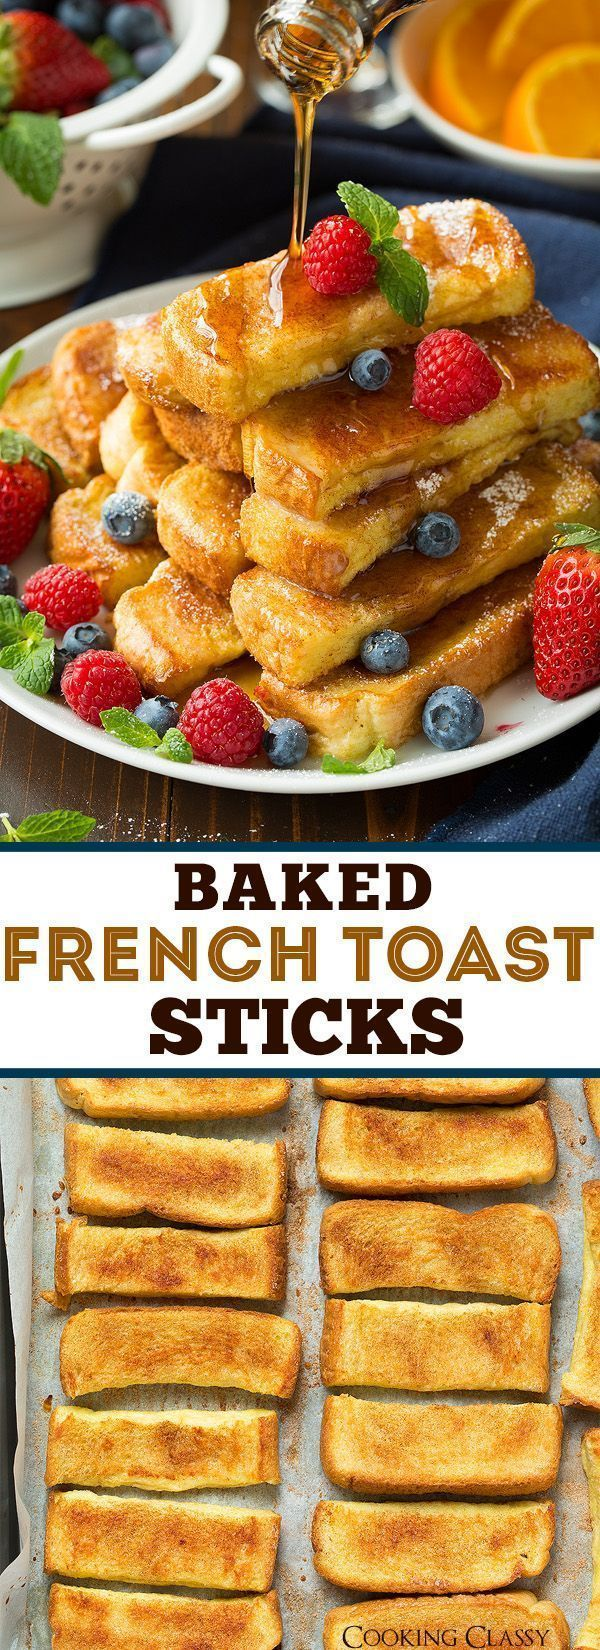 Baked French Toast Sticks Cooking Classy Breakfast